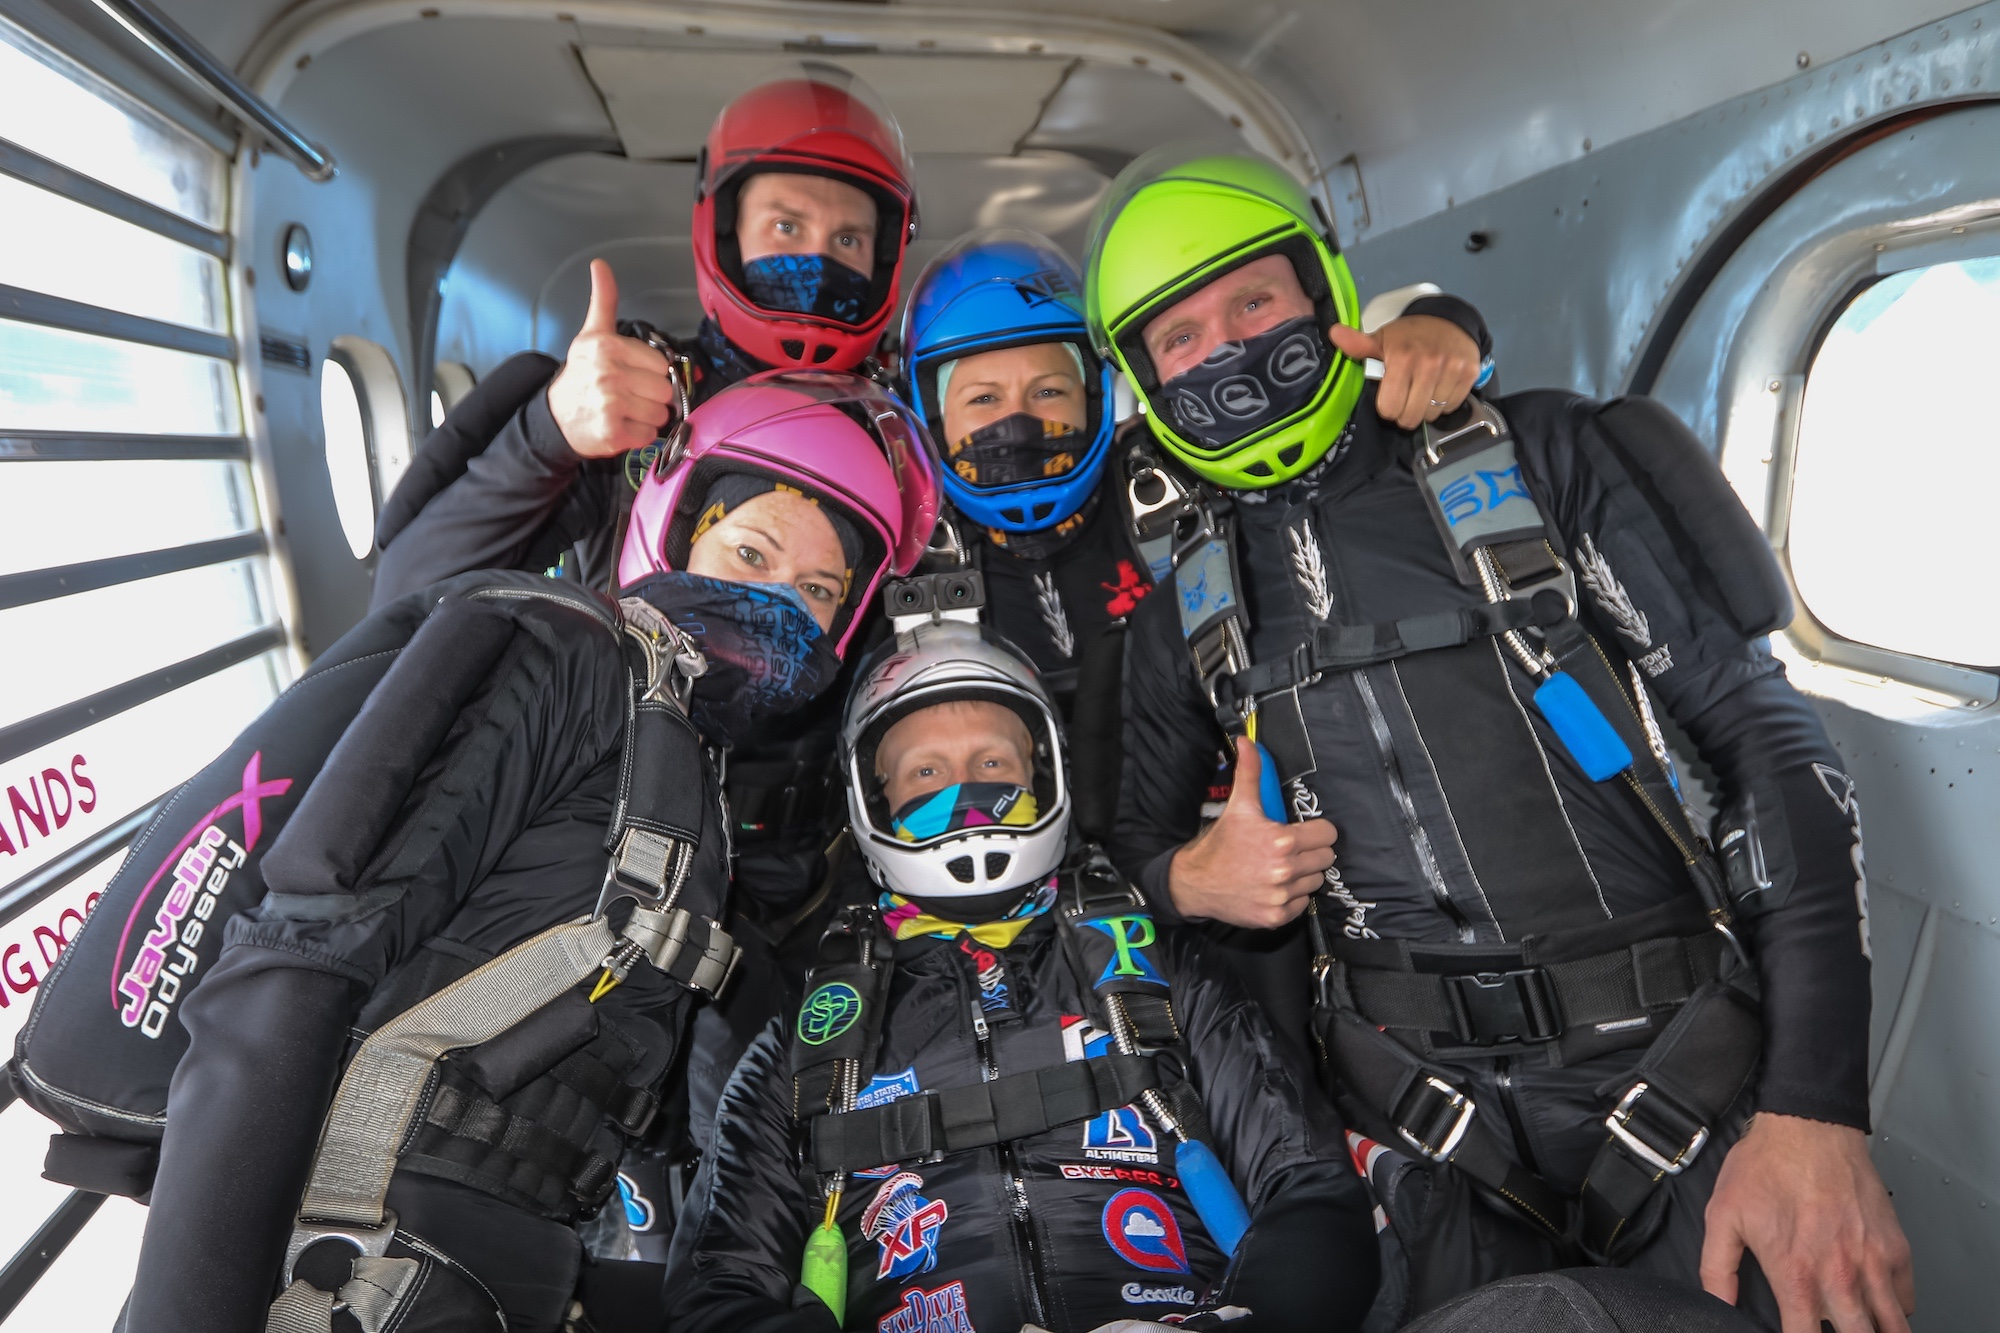 Midwest NEXT Formation Skydiving Team